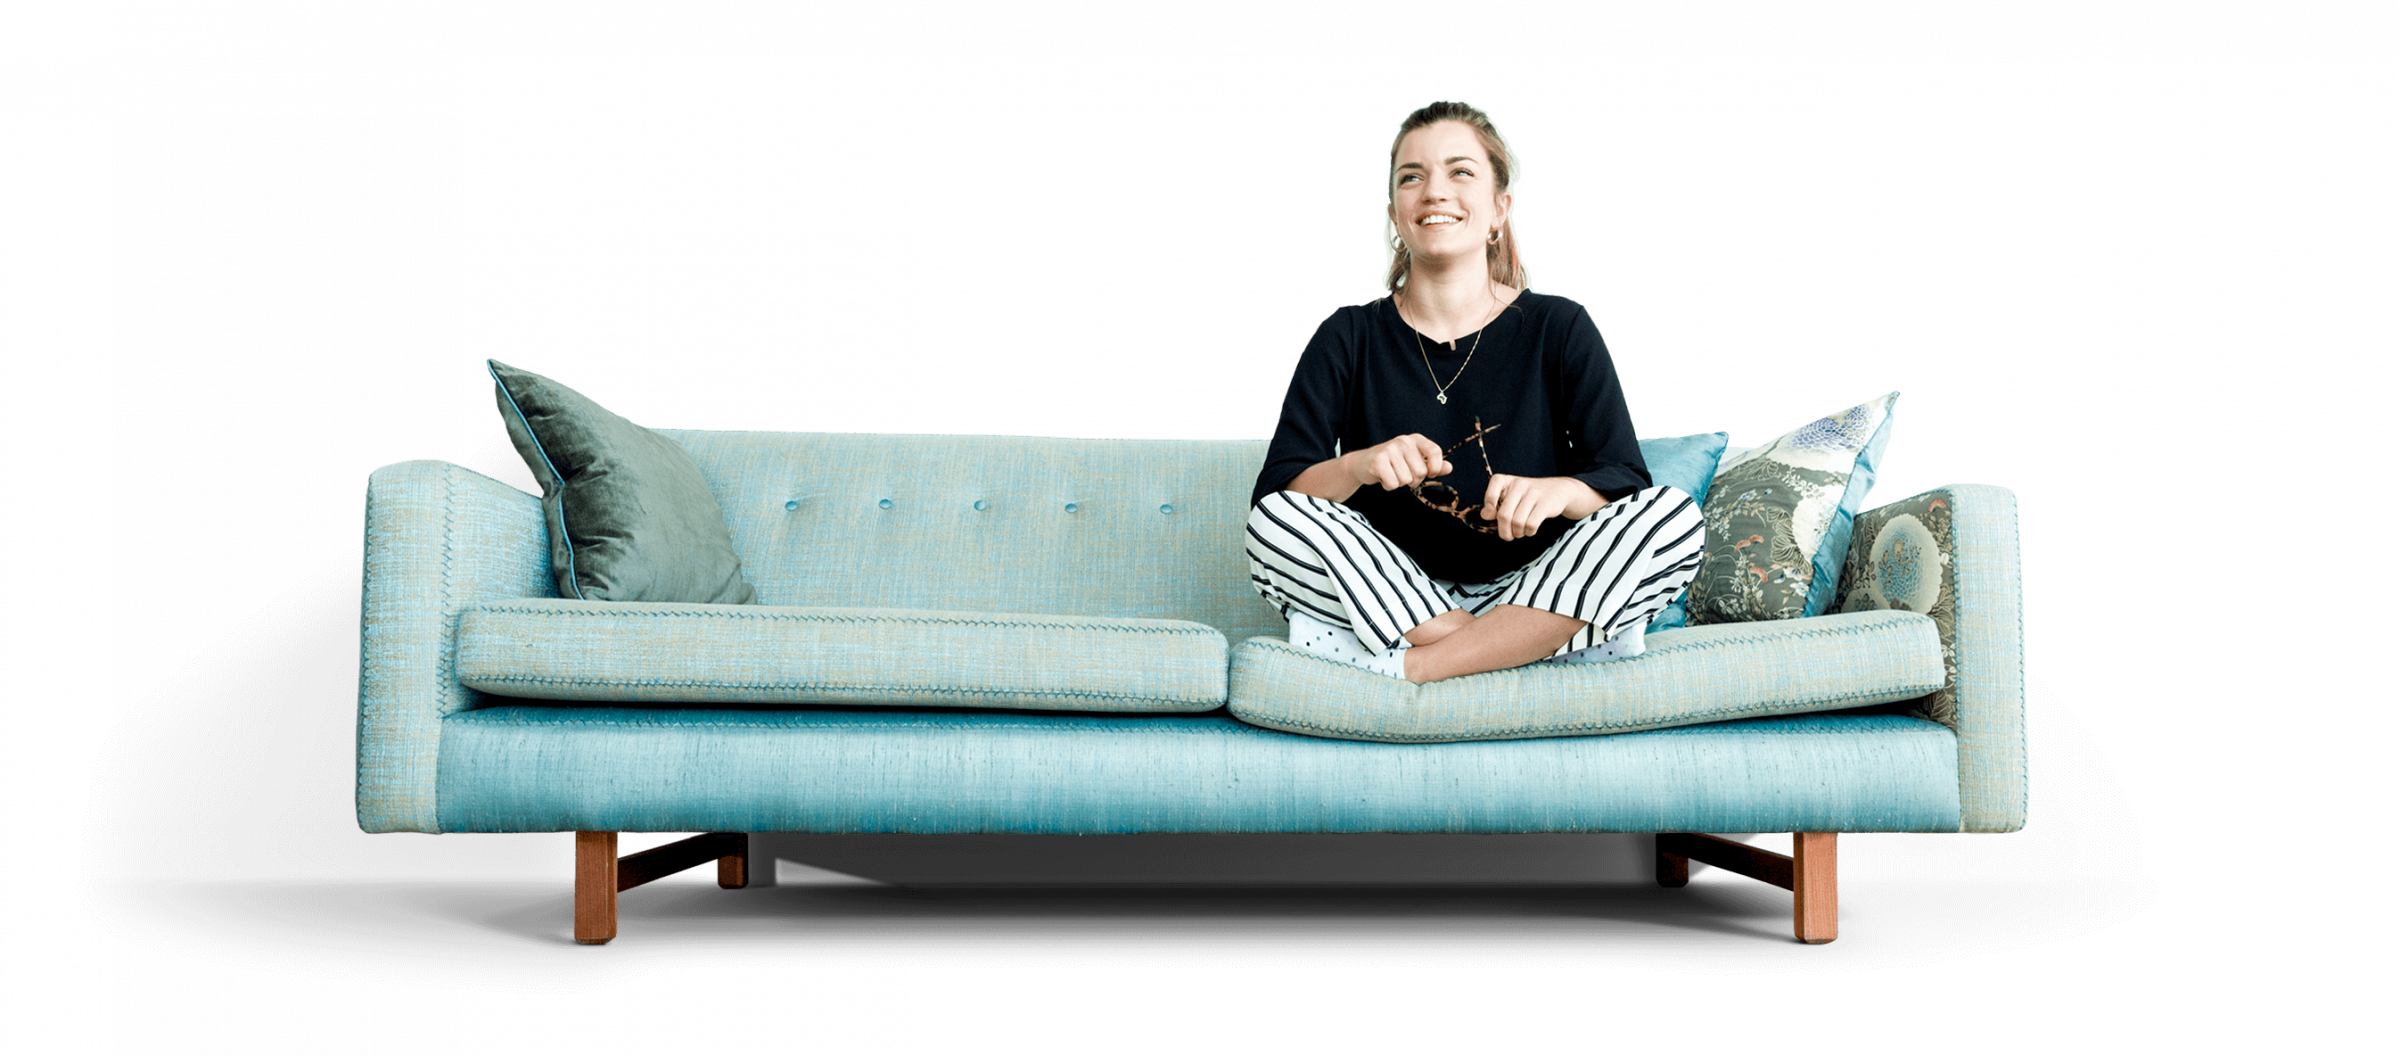 Sitting on couch png. Lisa preisig amazee labs